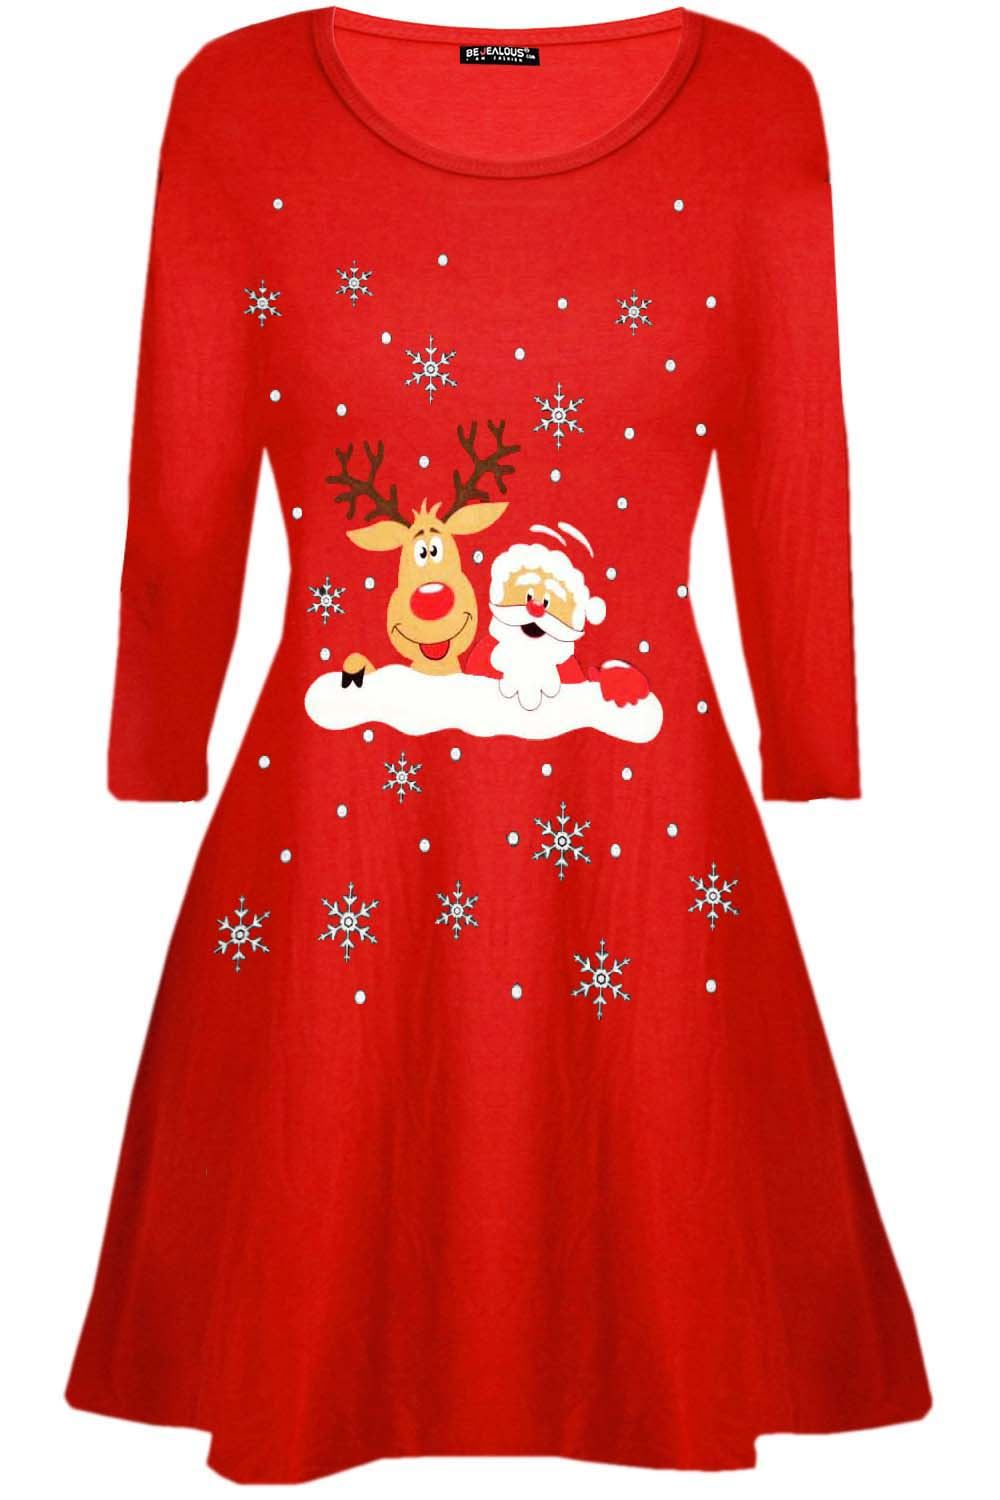 Womens-Ladies-Kids-Girls-Christmas-Xmas-Santa-Reindeer-Flared-Swing-Mini-Dress thumbnail 11